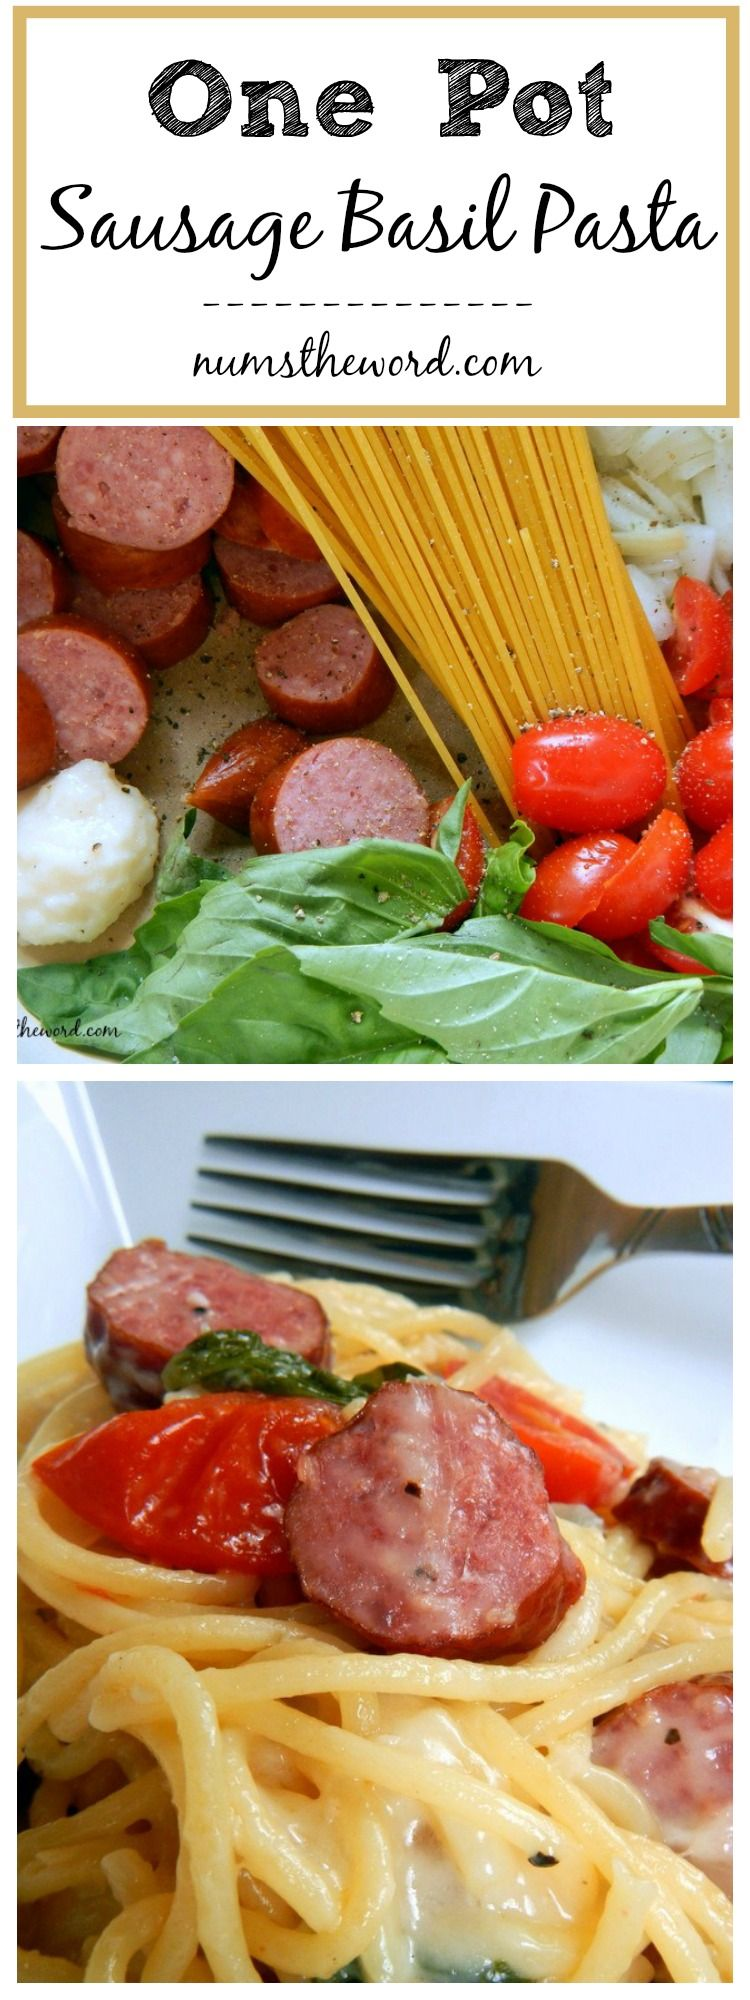 One Pot Sausage Basil Pasta - Looking for a quick weeknight dinner that requires very little effort or clean up? How about this 20 minute one pot pasta your whole family will love! #sausagedinner